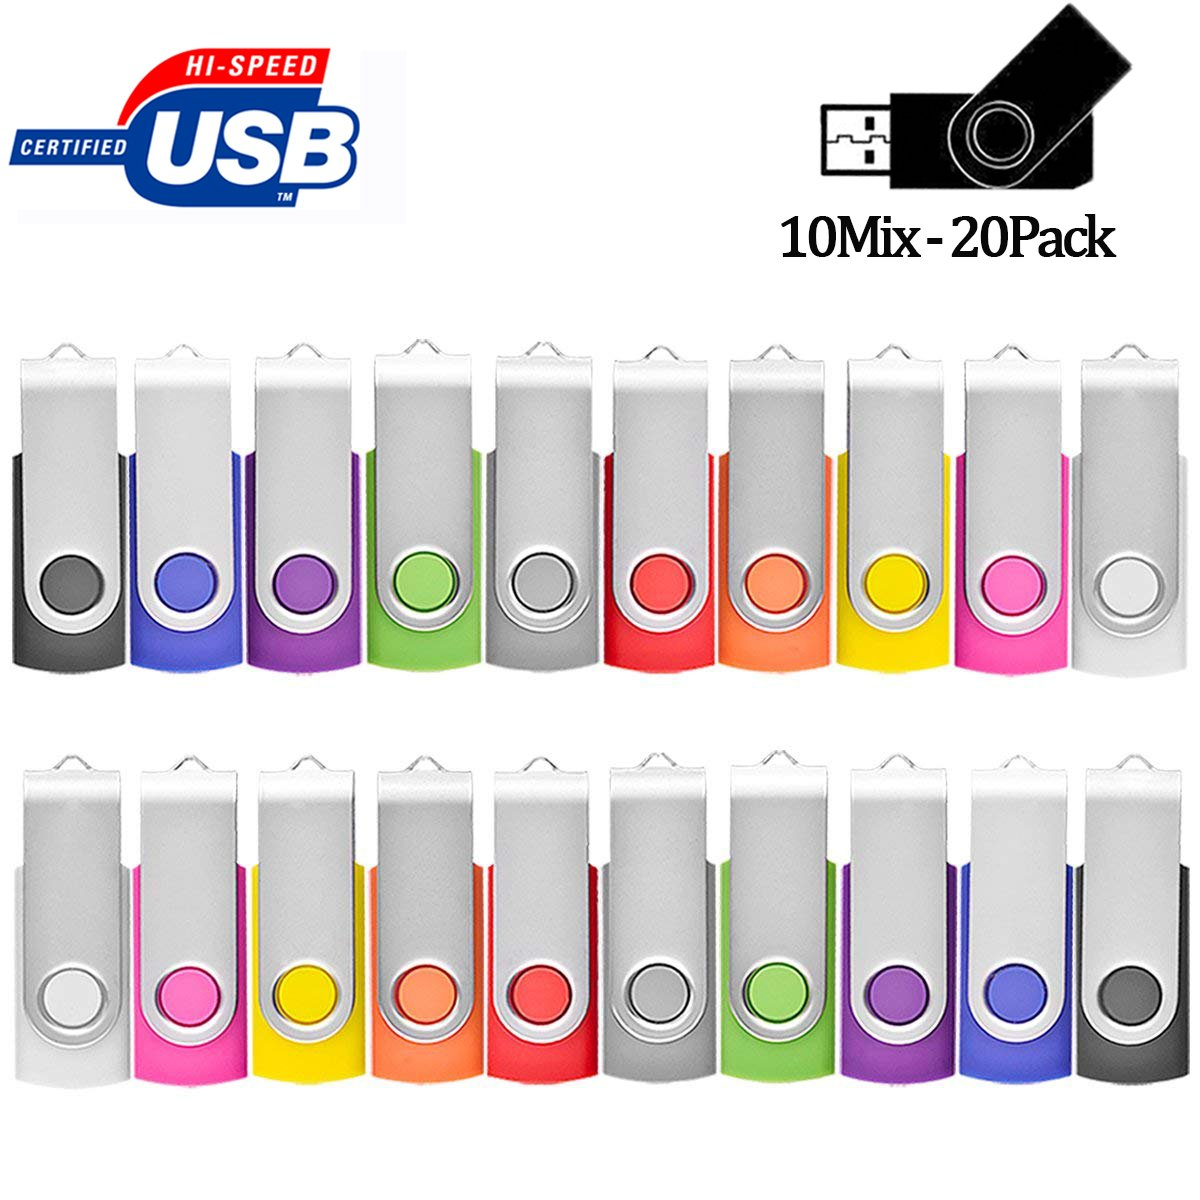 USB Flash Drive 1GB 20 Pack Bulk, Pen Drive AreTop USB2.0 Gig Stick Memory Stick Swivel Thumb Drives for Fold Date Storage (20Pcs-Multicolors)